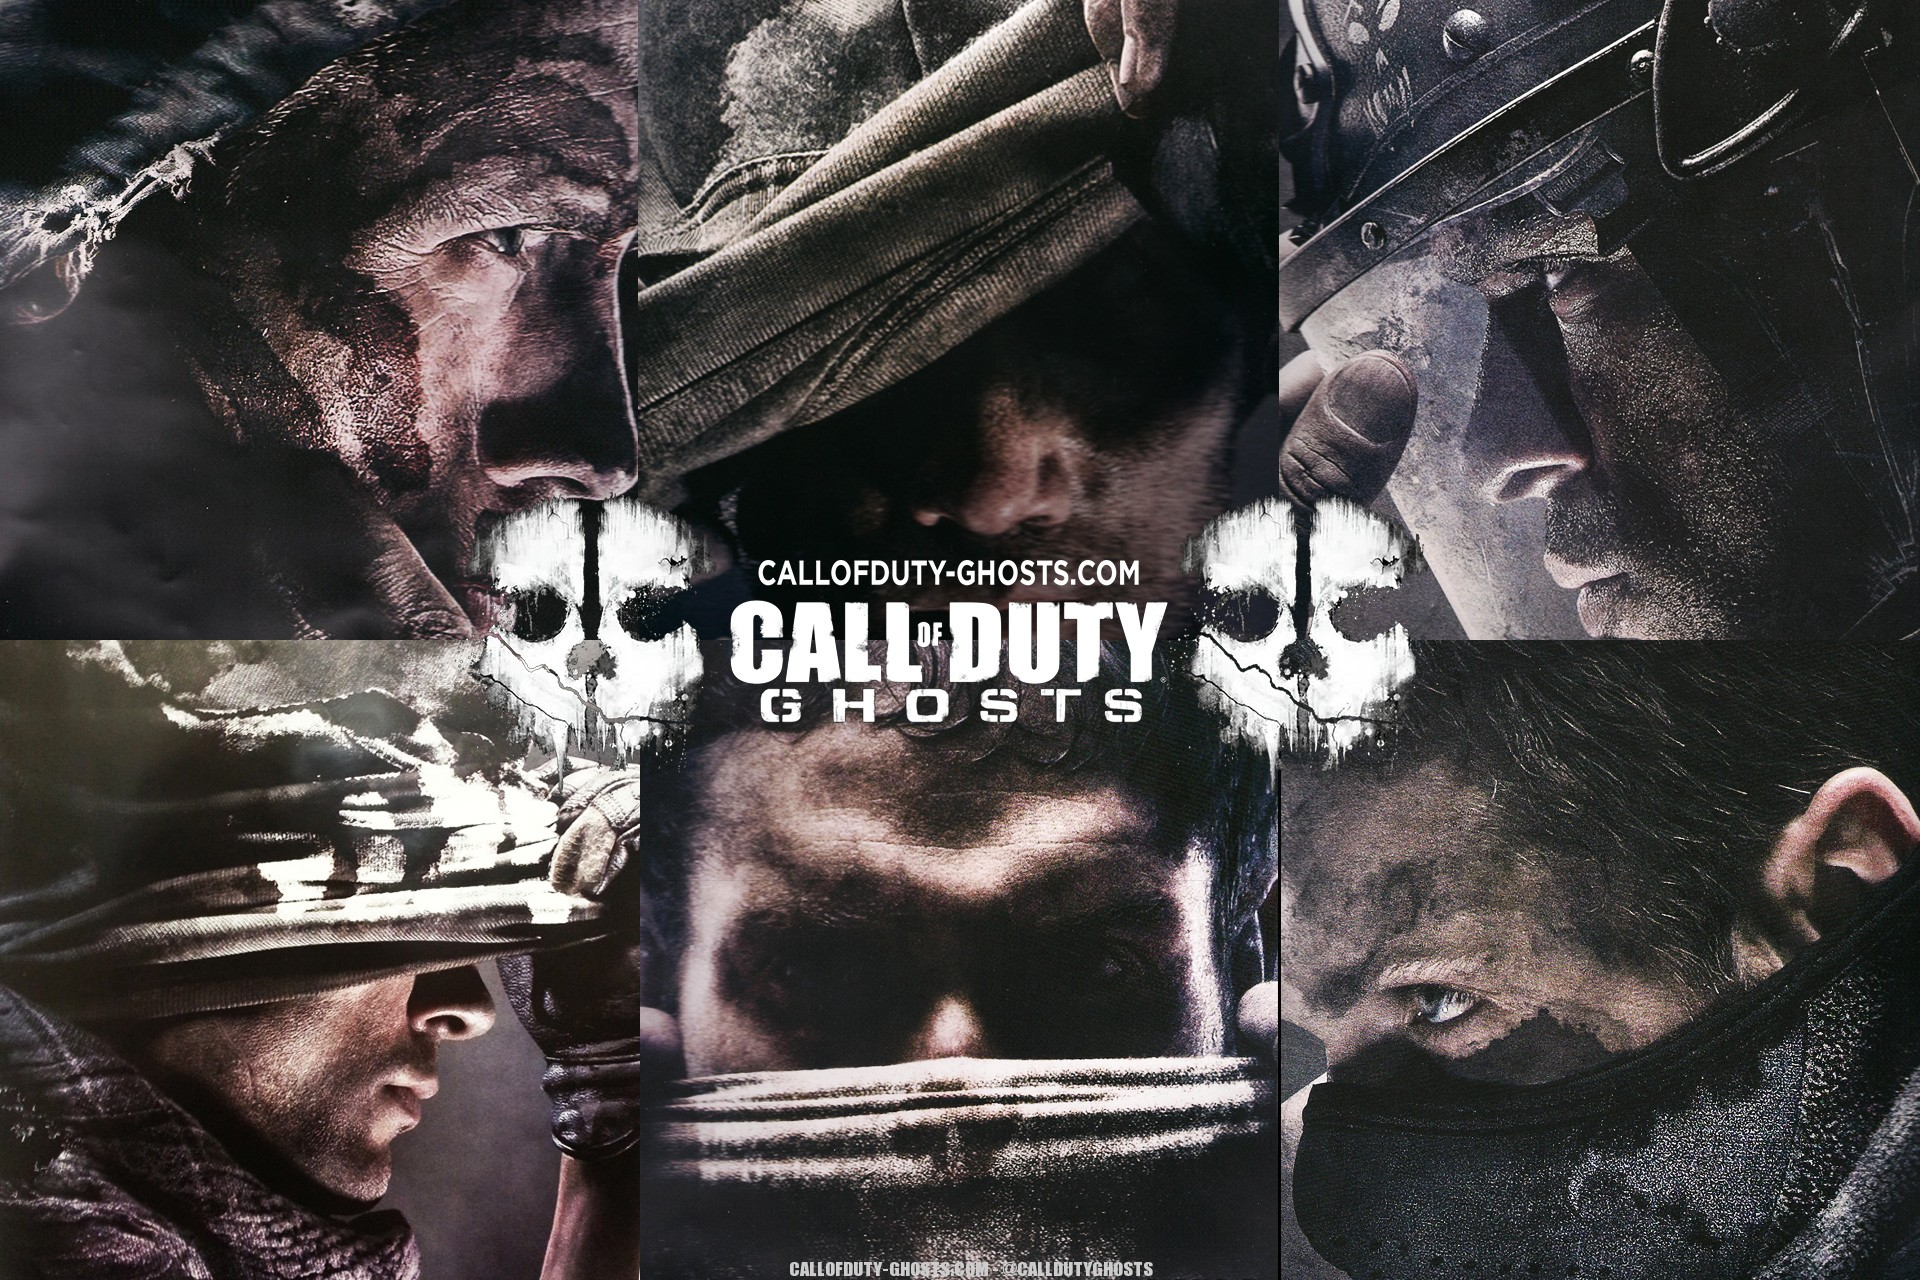 Free Download Call Of Duty Ghosts Pic 2 Wallpaper Image Armies Of